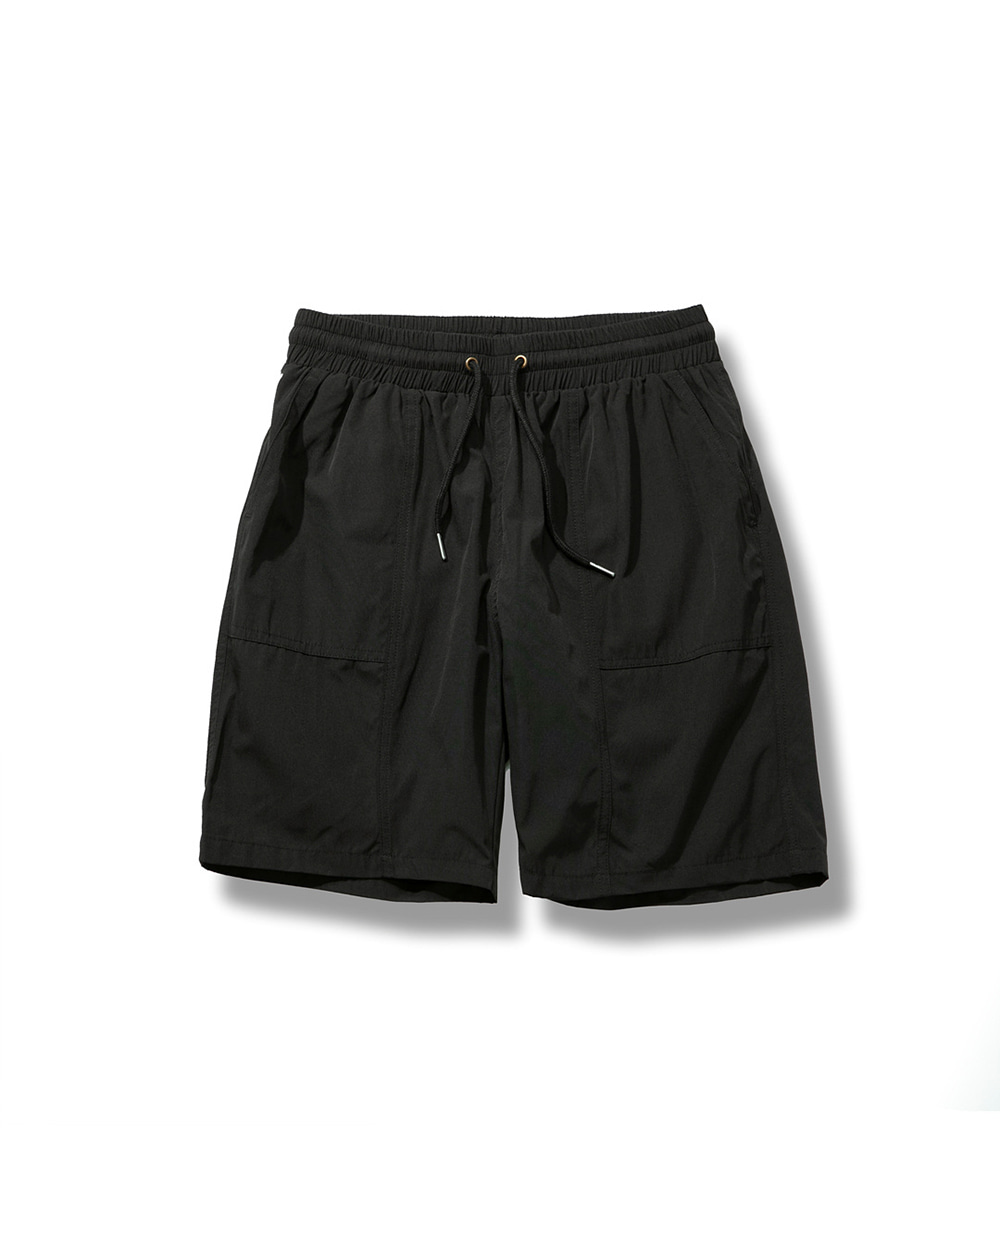 C/P FATIGUE HALF PANTS BLACK